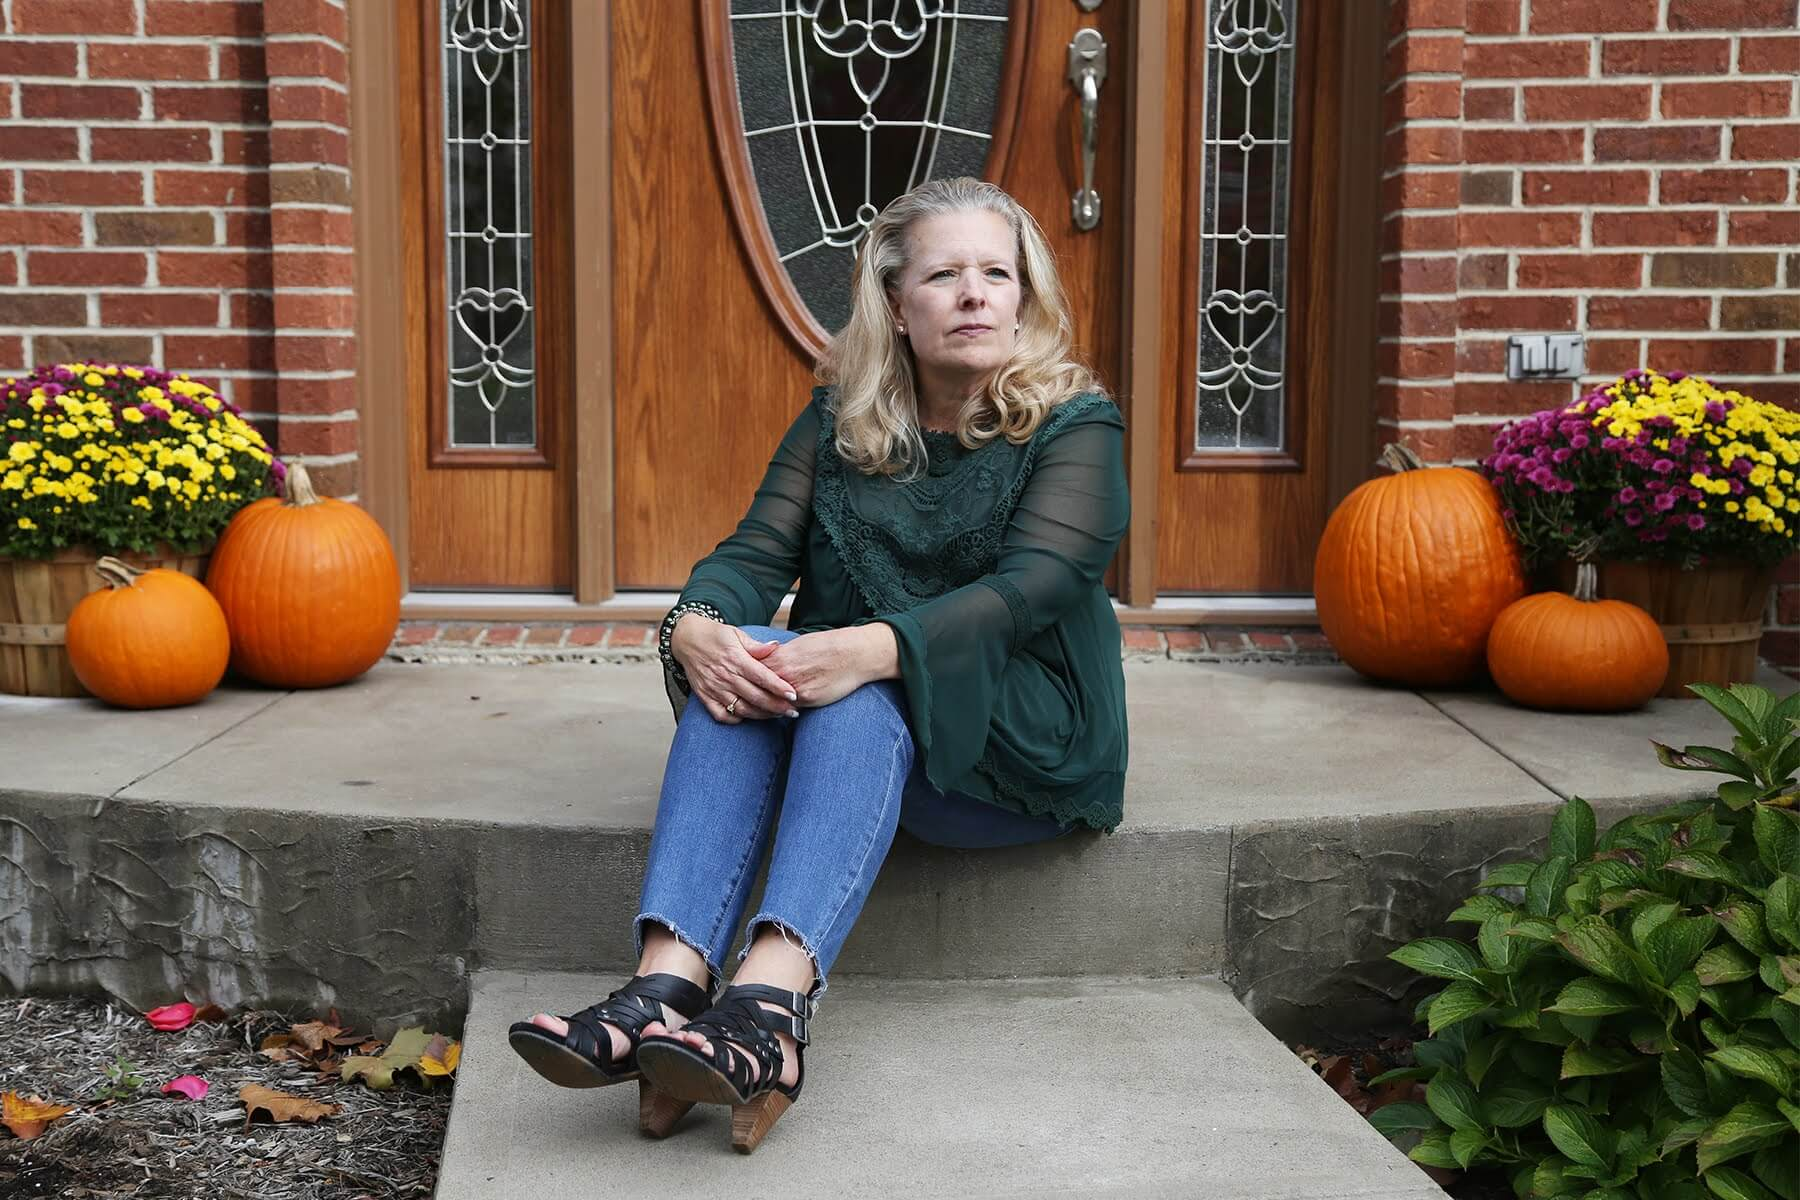 Tina Flowers sits outside her home in Hampton Township in October 2020. (Photo by Ryan Loew/PublicSource)